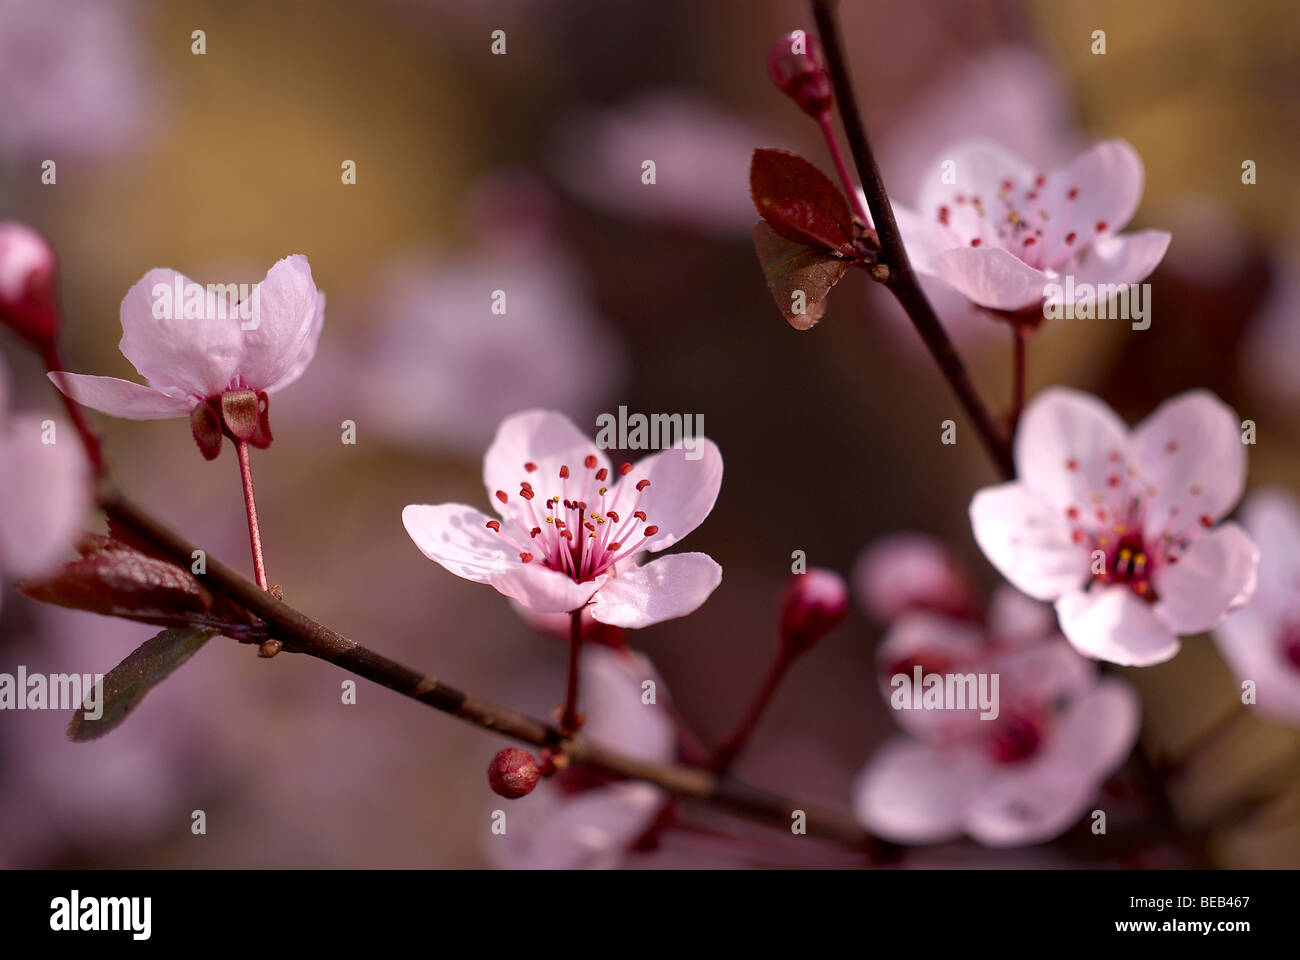 Plum tree blossoms - Stock Image